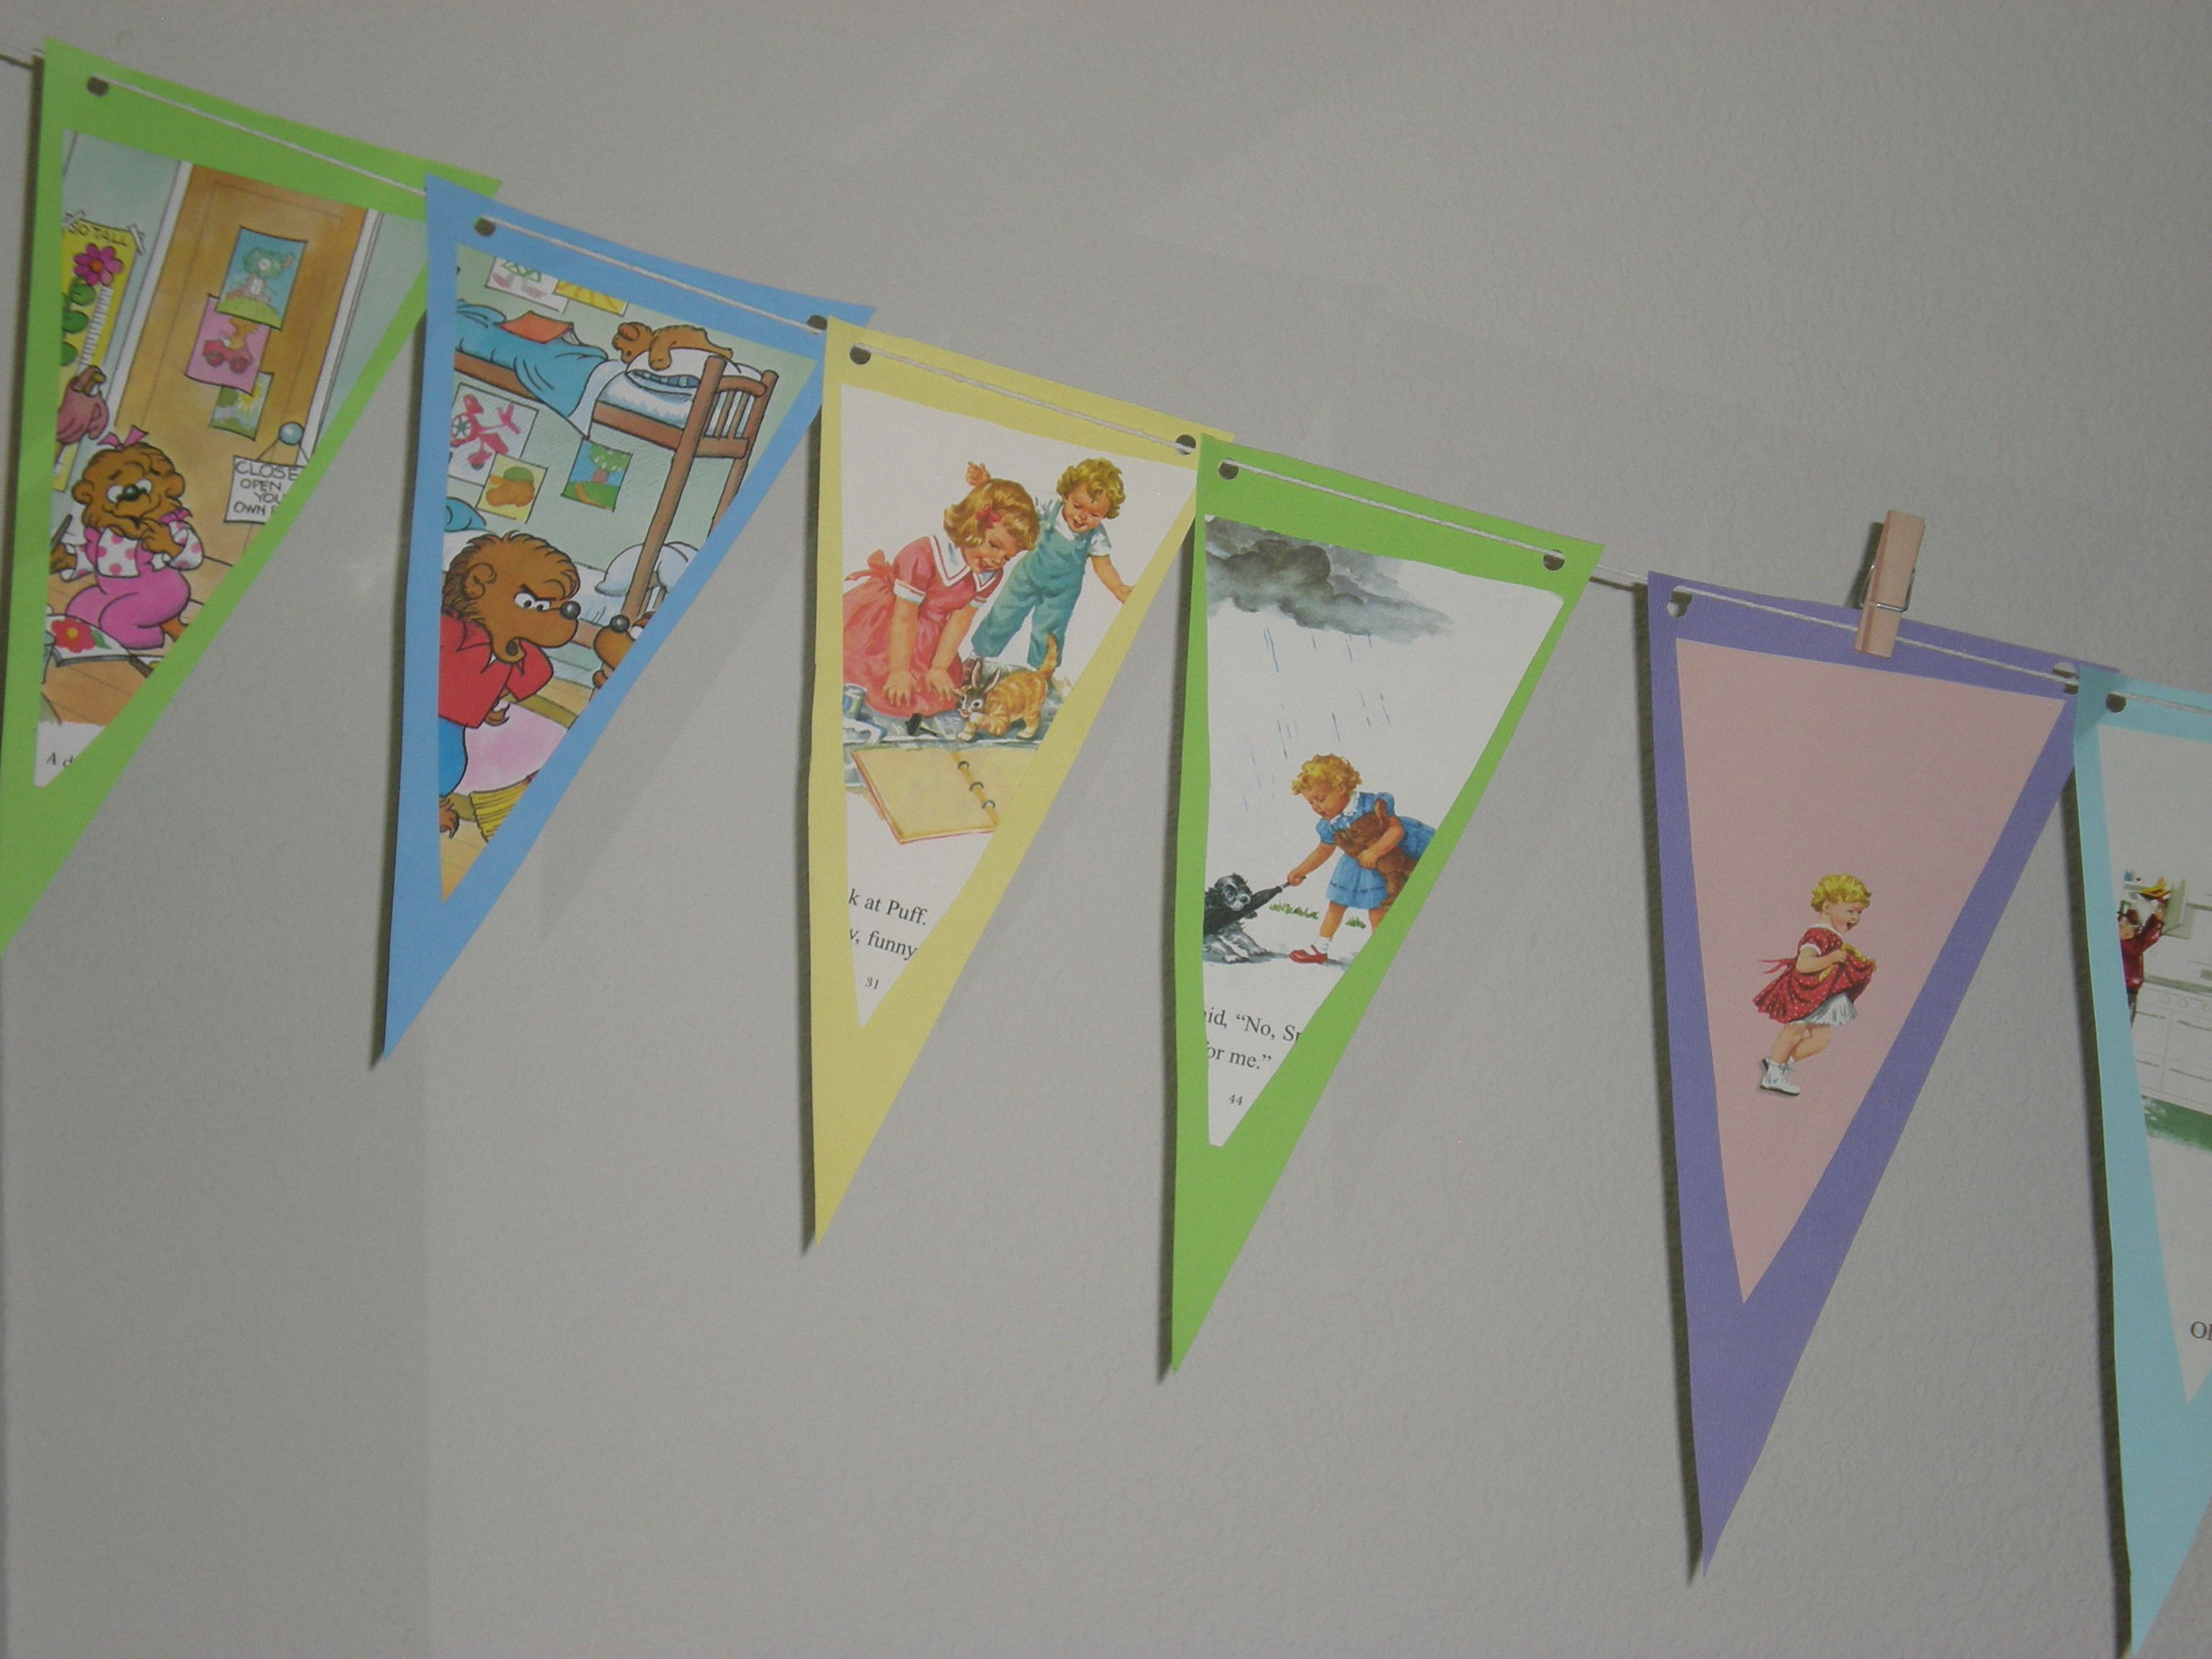 Scrapbook paper books - Made This Banner With Thrift Store Children S Books And Scrapbook Paper For My Son And Daughter